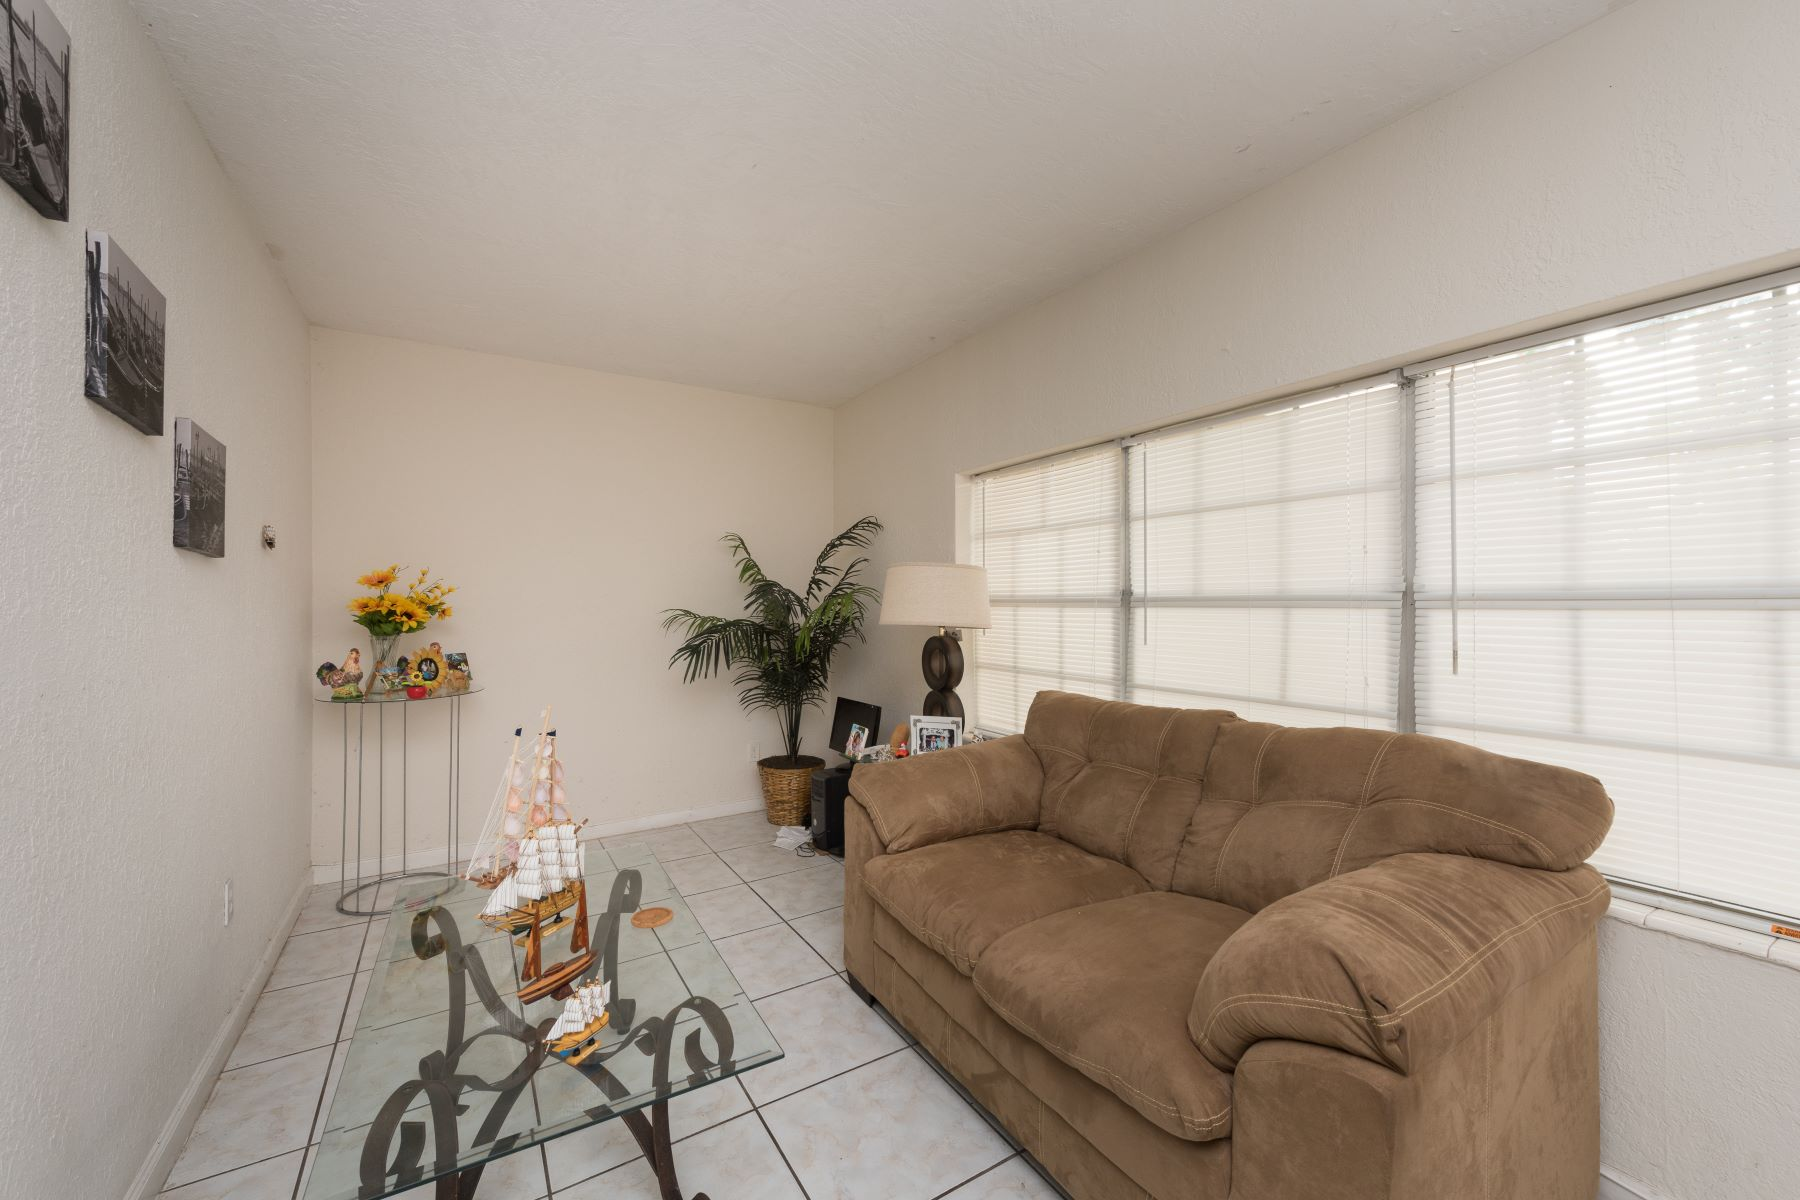 Condominium for Rent at 1855 Ne 121st St 1855 Ne 121st St 7 North Miami, Florida 33181 United States